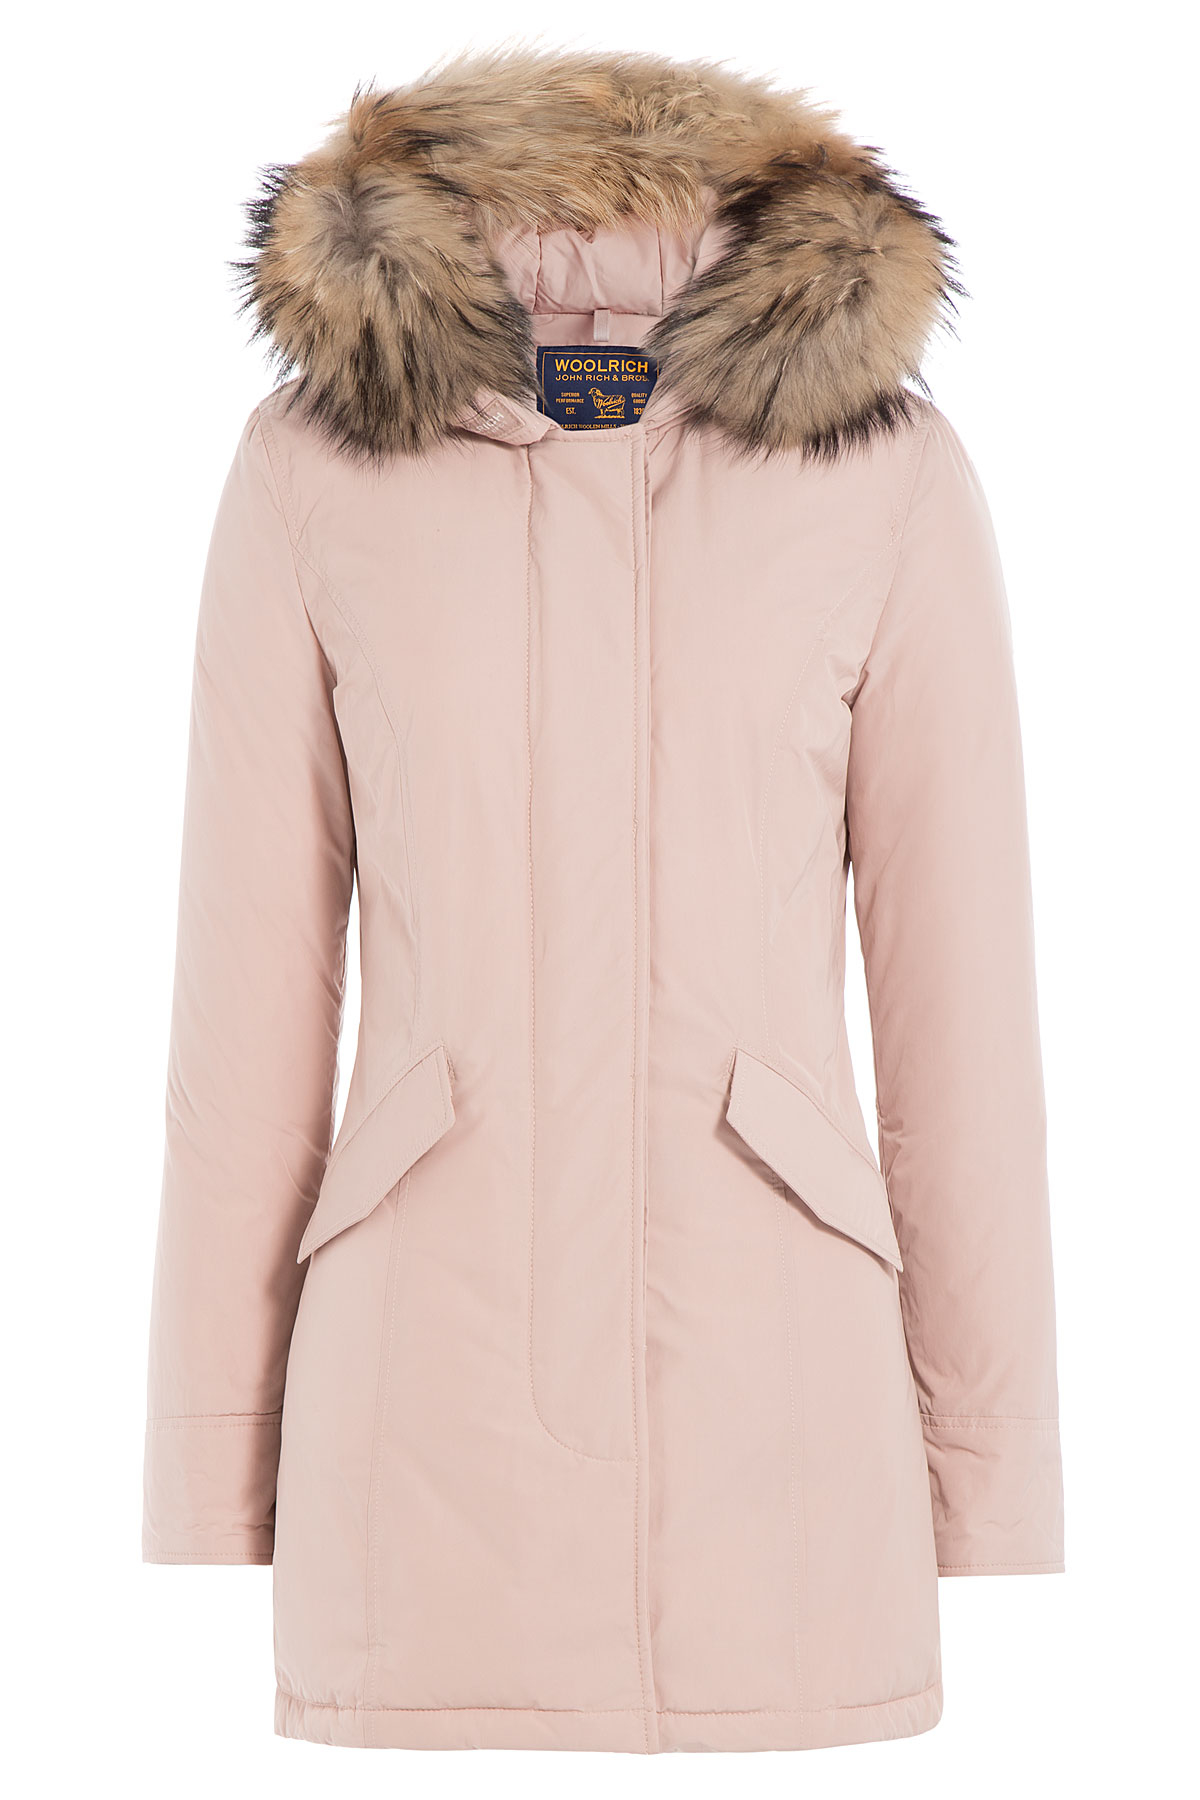 woolrich luxury arctic down parka with fur trimmed hood rose in pink lyst. Black Bedroom Furniture Sets. Home Design Ideas